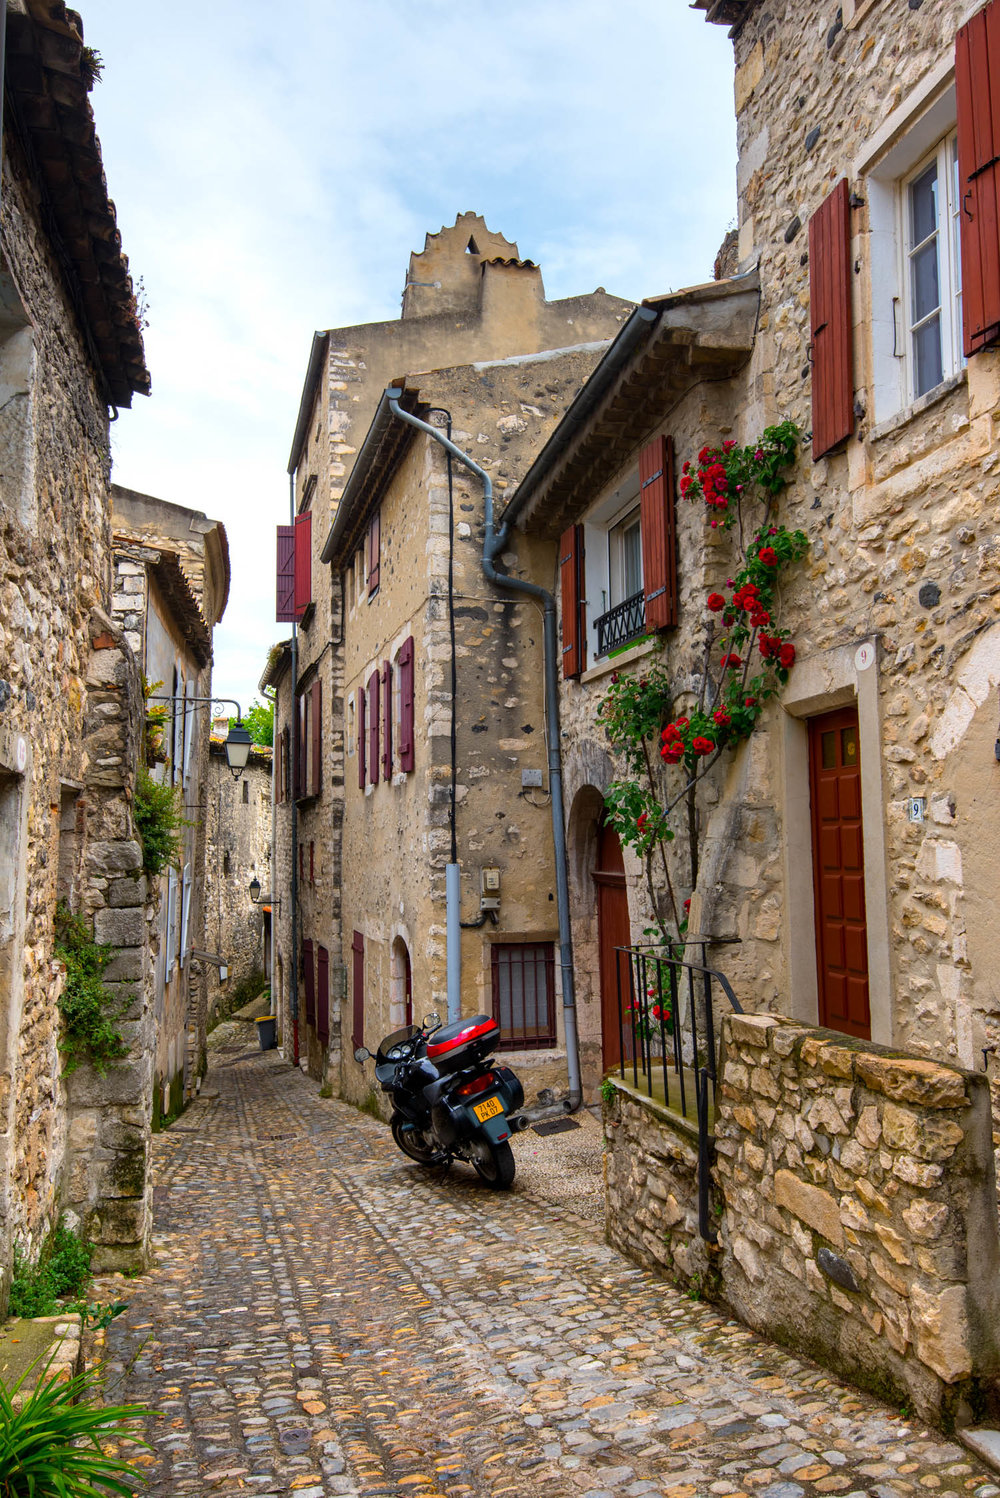 Walking through Viviers, France